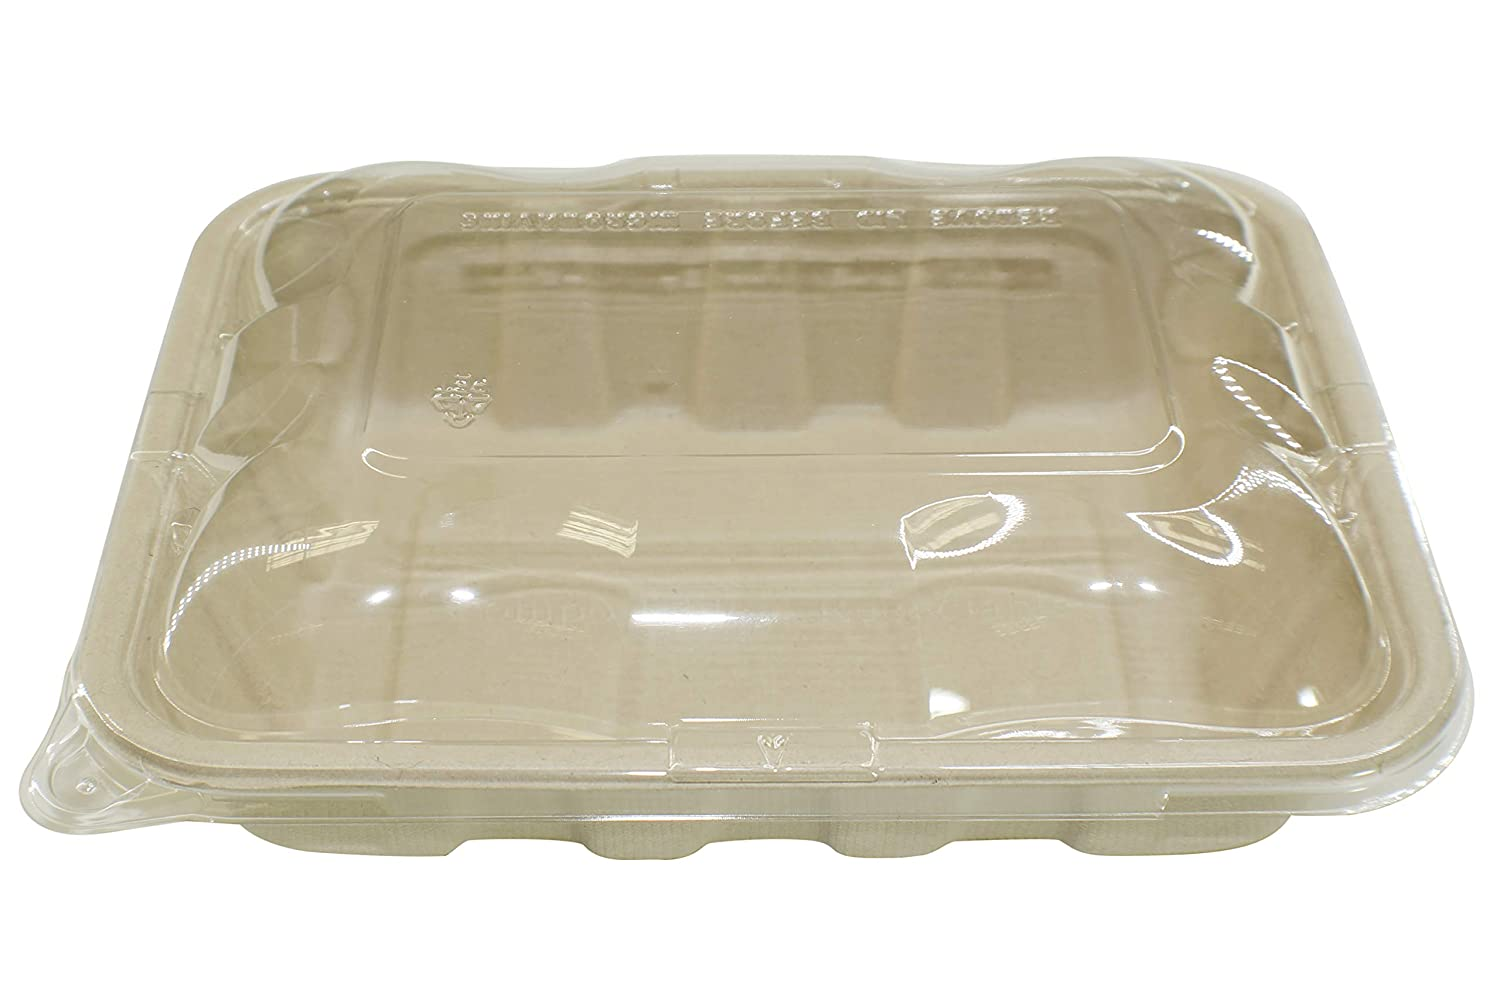 [100 SETS] 32oz Compostable Eco Friendly Container Trays with Lids - Deep Container made from Plant Fibers for Meal Prep Dinnerware Plates Catering Bento Boxes Takeout 100% by products